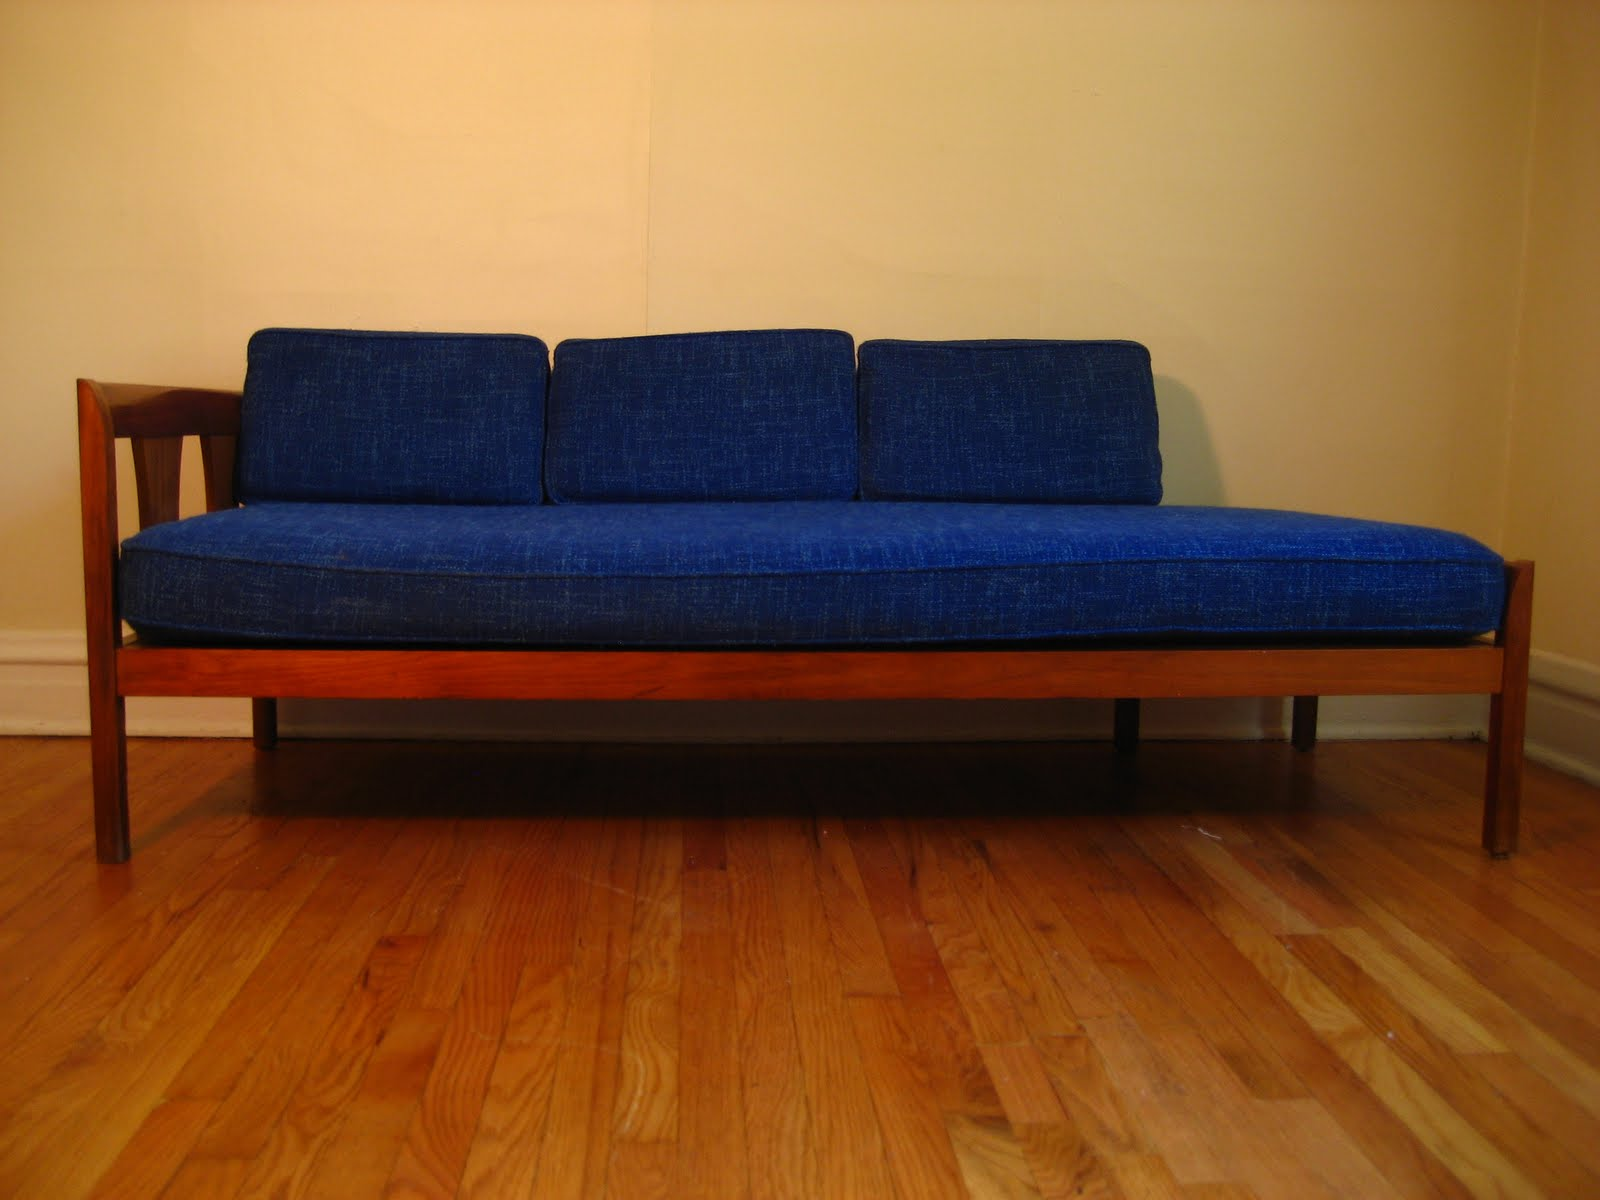 Sofa Daybed sofa style daybeds Gallery Image Lautarii